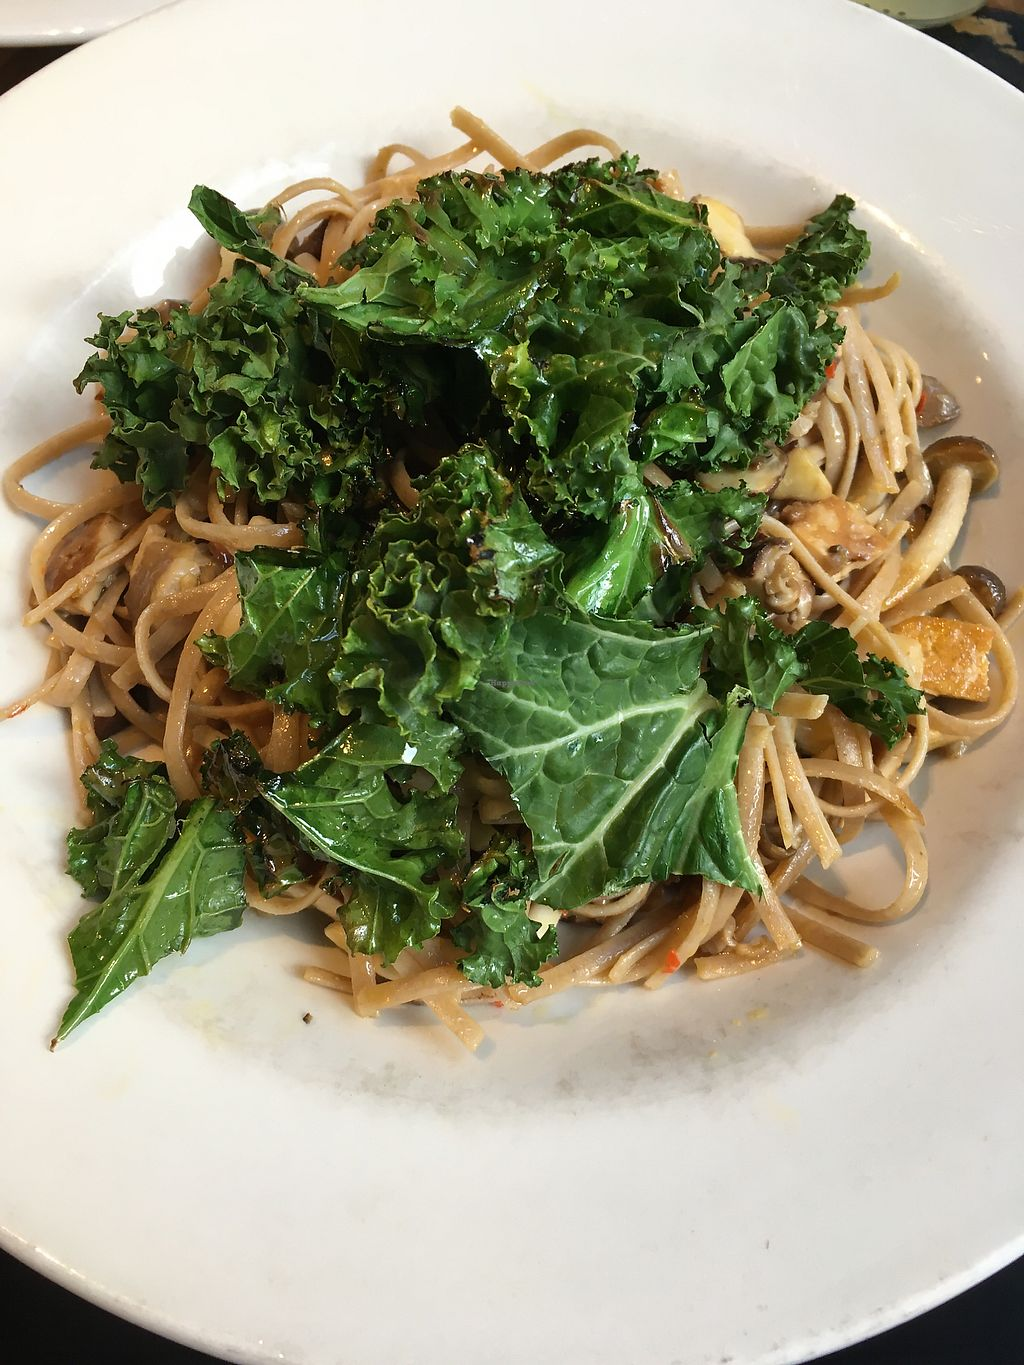 """Photo of Henderson's Vegan  by <a href=""""/members/profile/xveganladyx"""">xveganladyx</a> <br/>Mushroom Linguine <br/> February 10, 2018  - <a href='/contact/abuse/image/59873/357355'>Report</a>"""